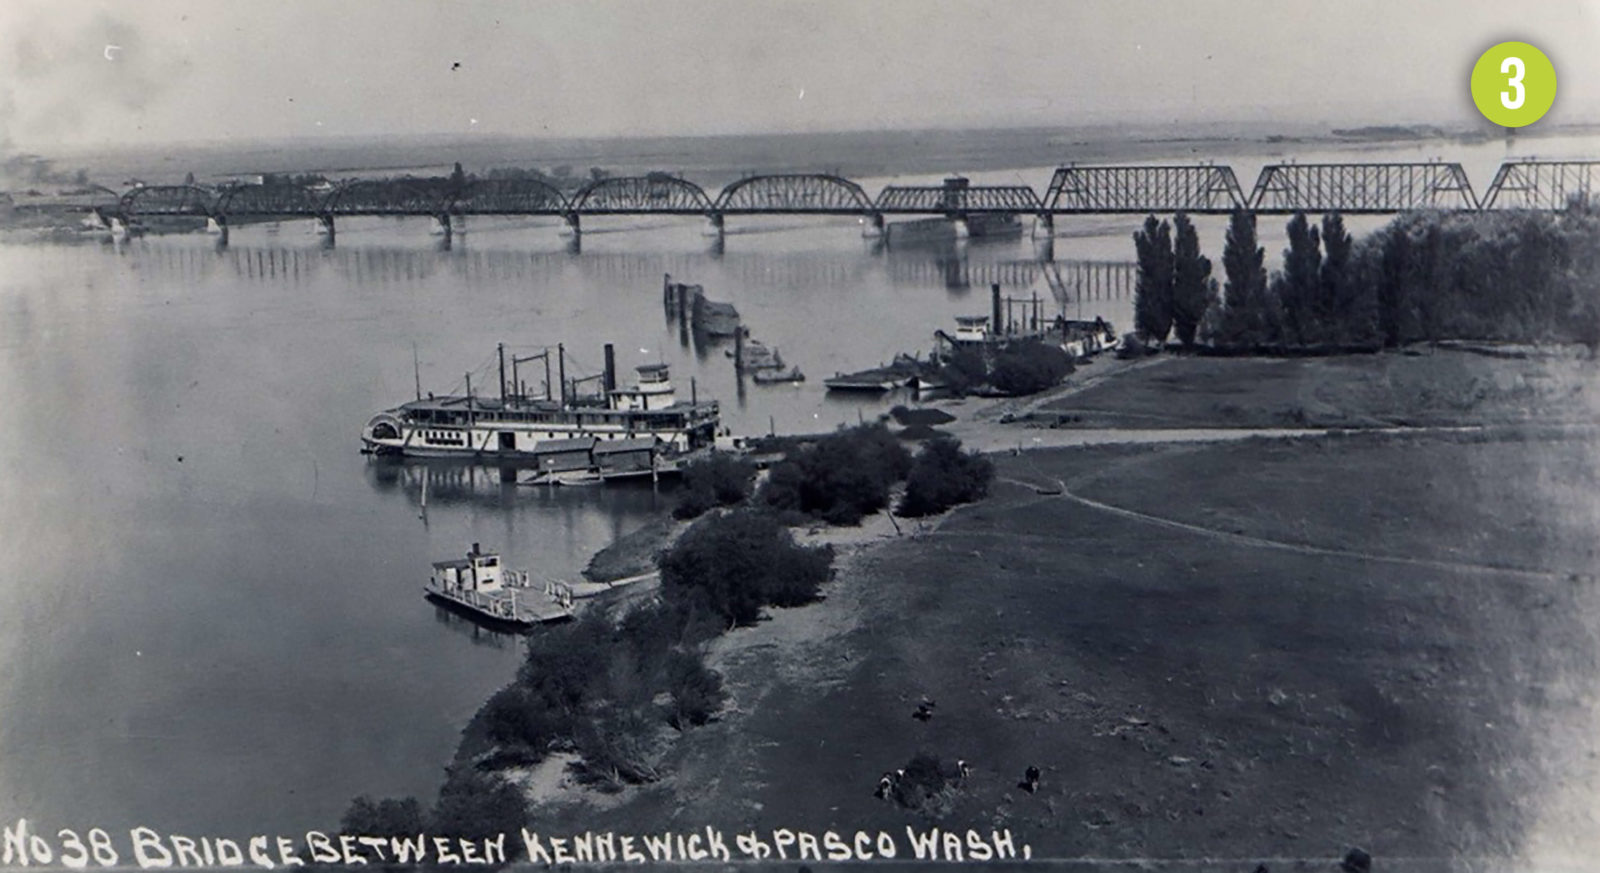 Port of Kennewick facilities circa 1920.